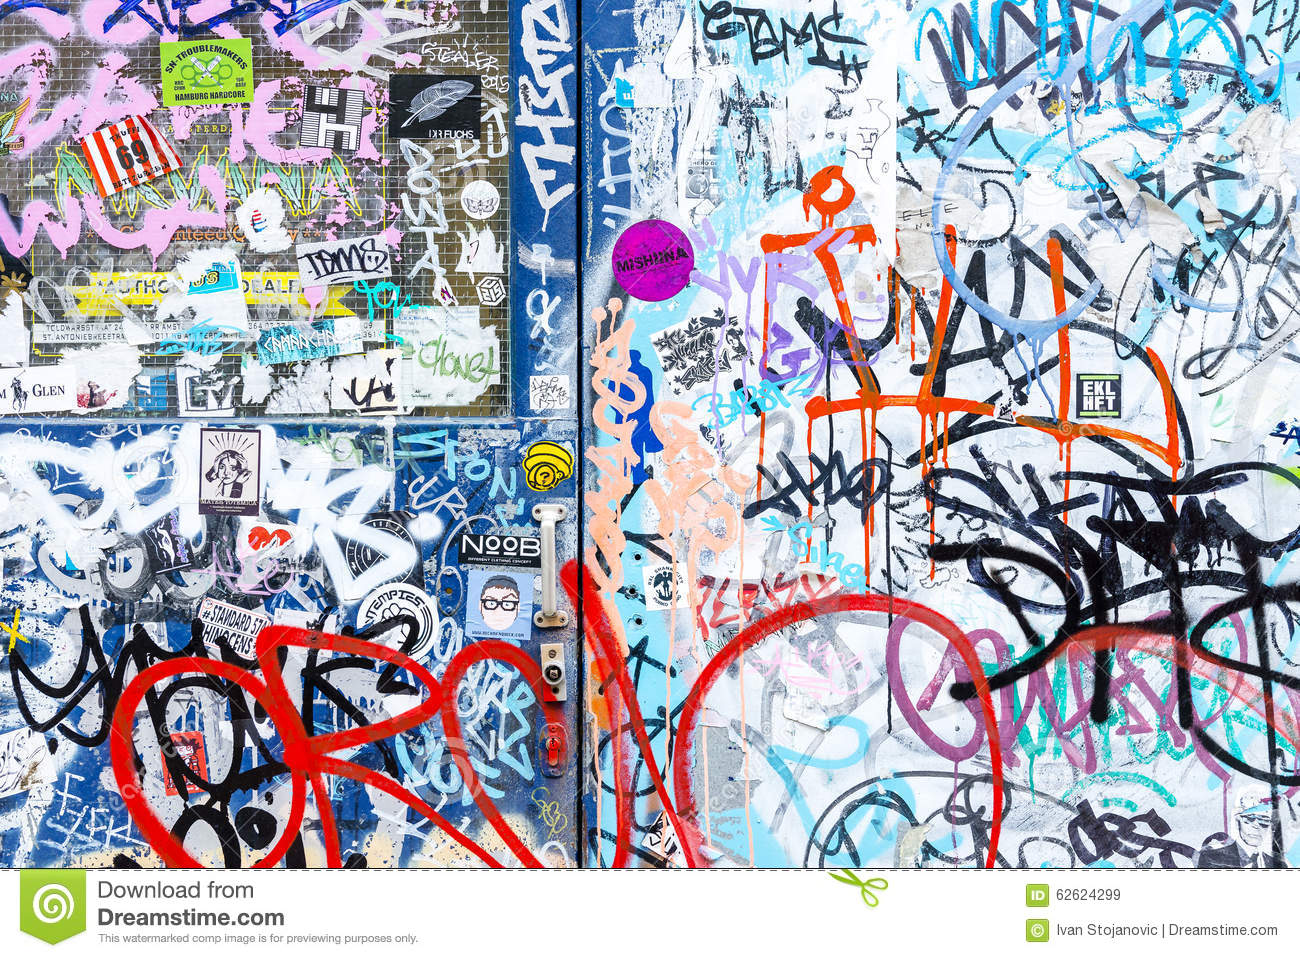 Graffiti wall creator - Download Aplikasi Graffiti Creator Java Sticker And Graffiti Wall Background Editorial Stock Image Image